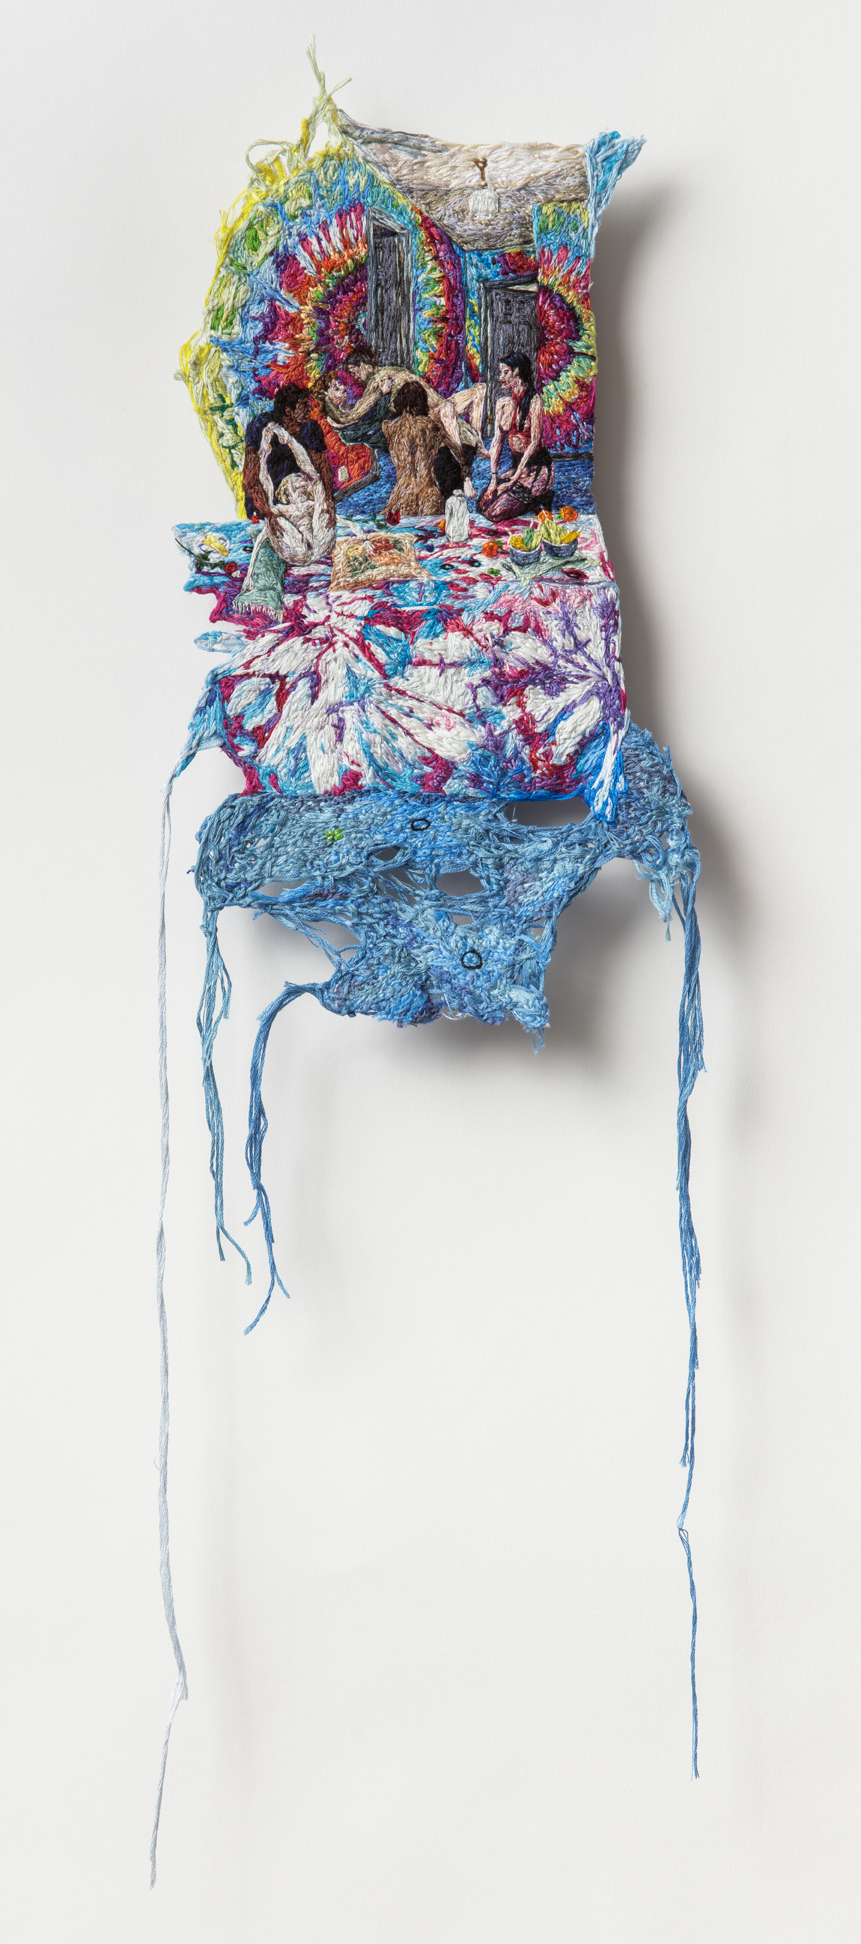 Heart , 2018, Embroidery Thread, Fabric, 7.5 in x 25 inches